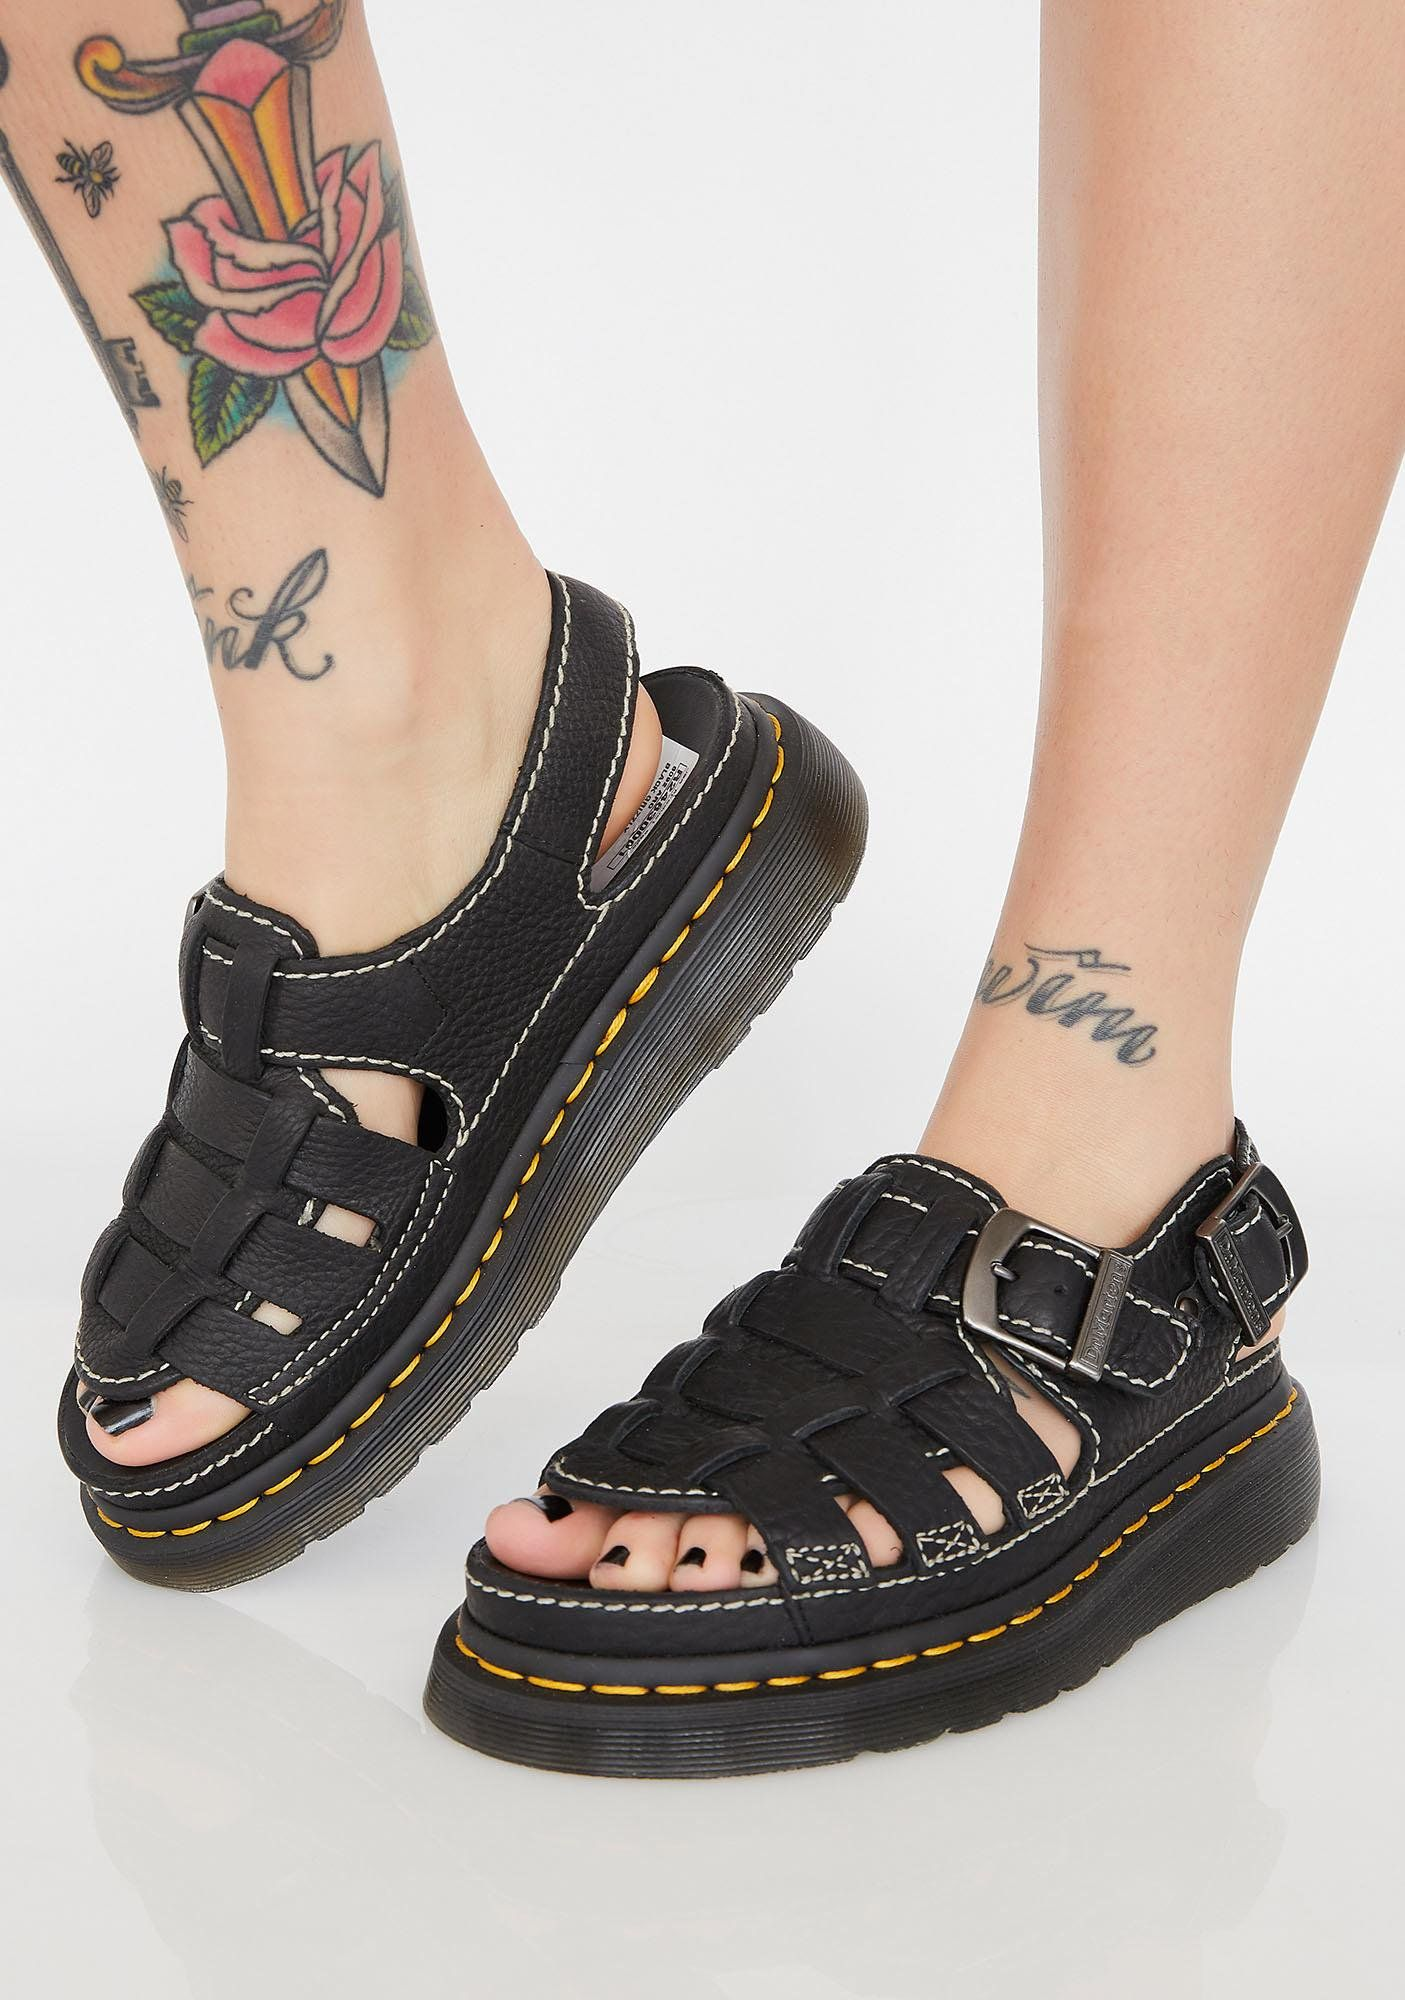 This Dr. Martens spin on a '90s inspired gladiator